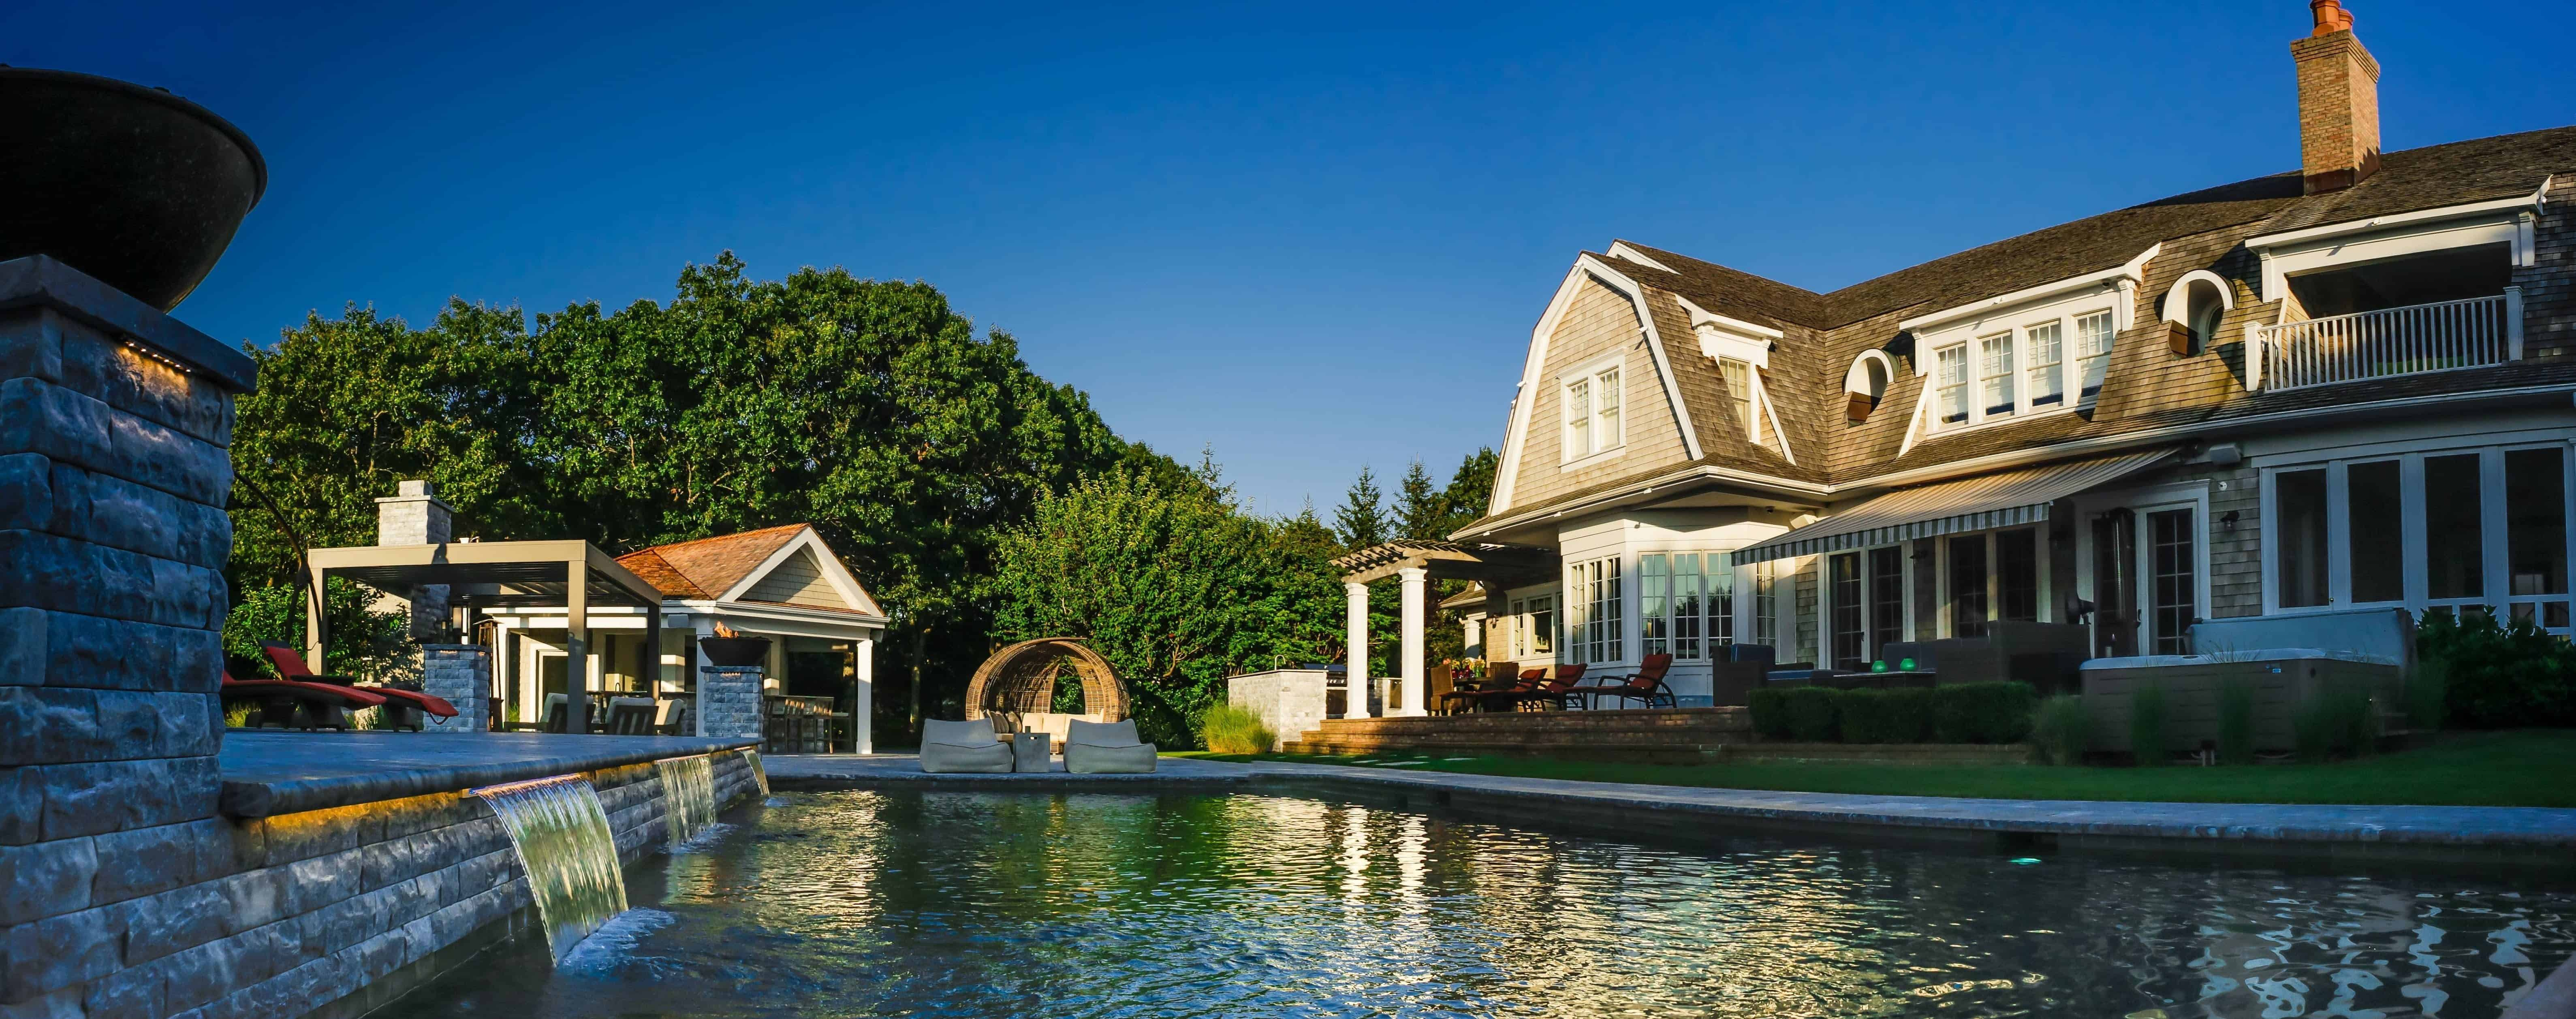 20' x 40' Gunite Pool with Sheer Descents and Fire Bowls - Southampton, Long Island NY